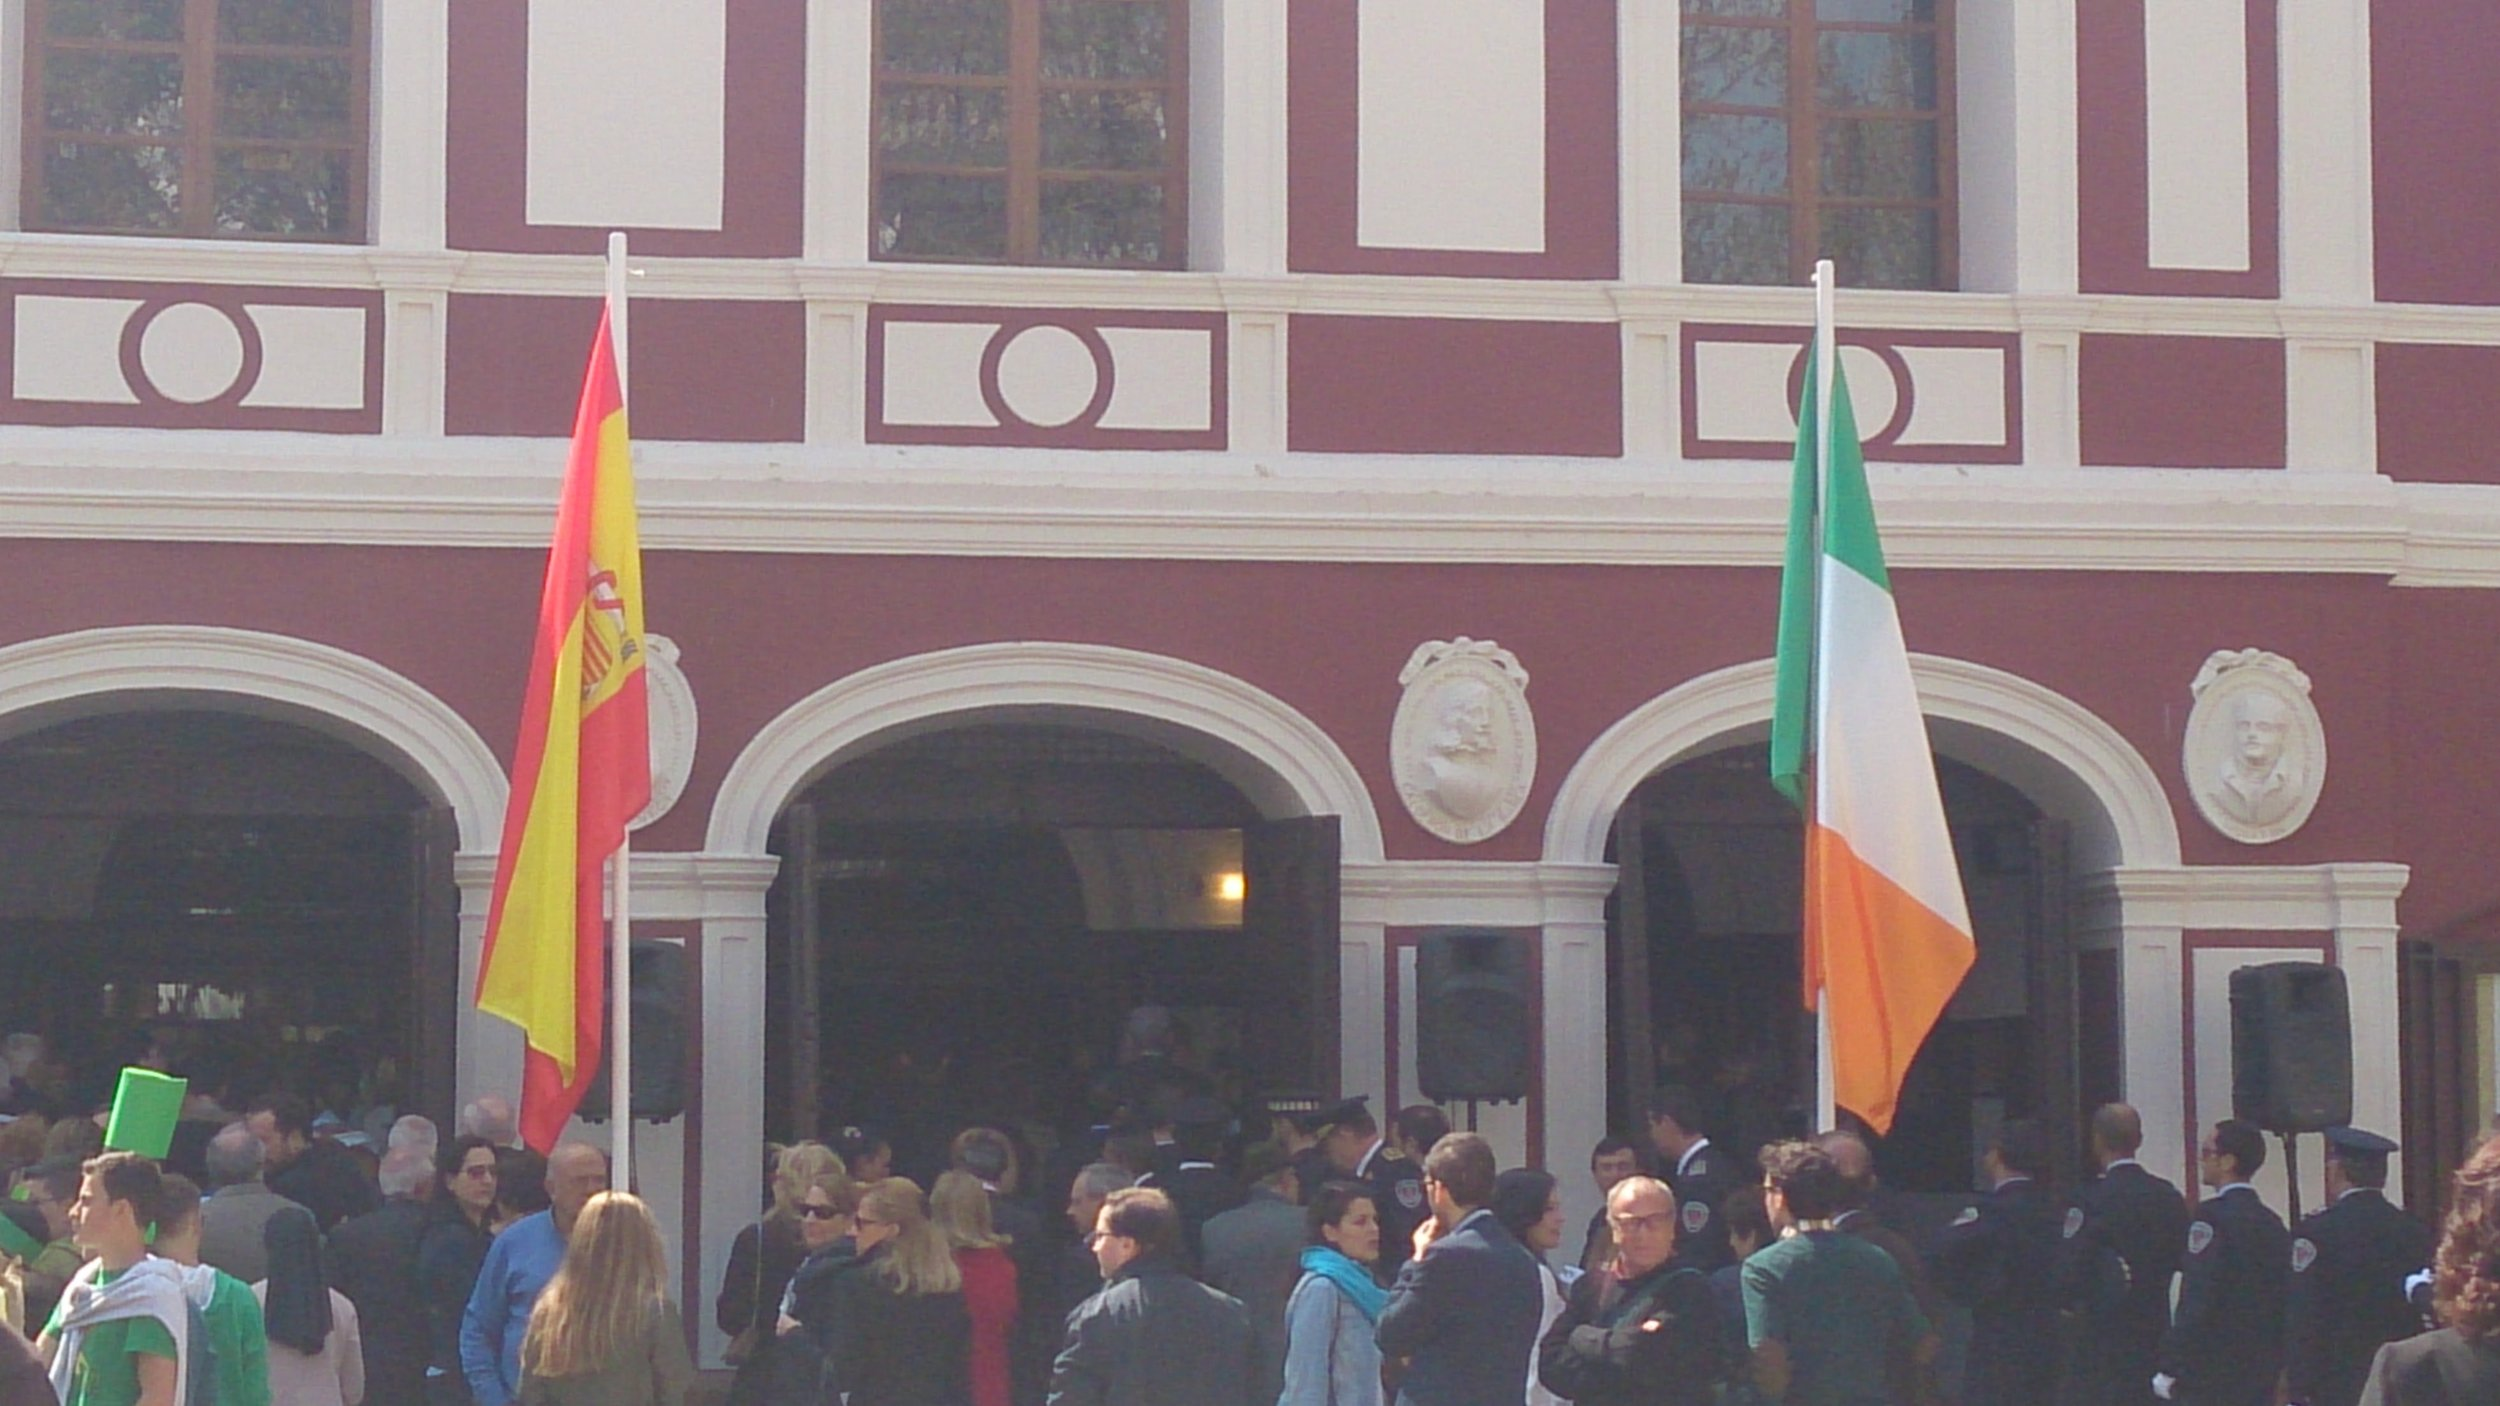 The Irish and Spanish flags are raised in honour of the 'special relationship' between Eire and Lorca